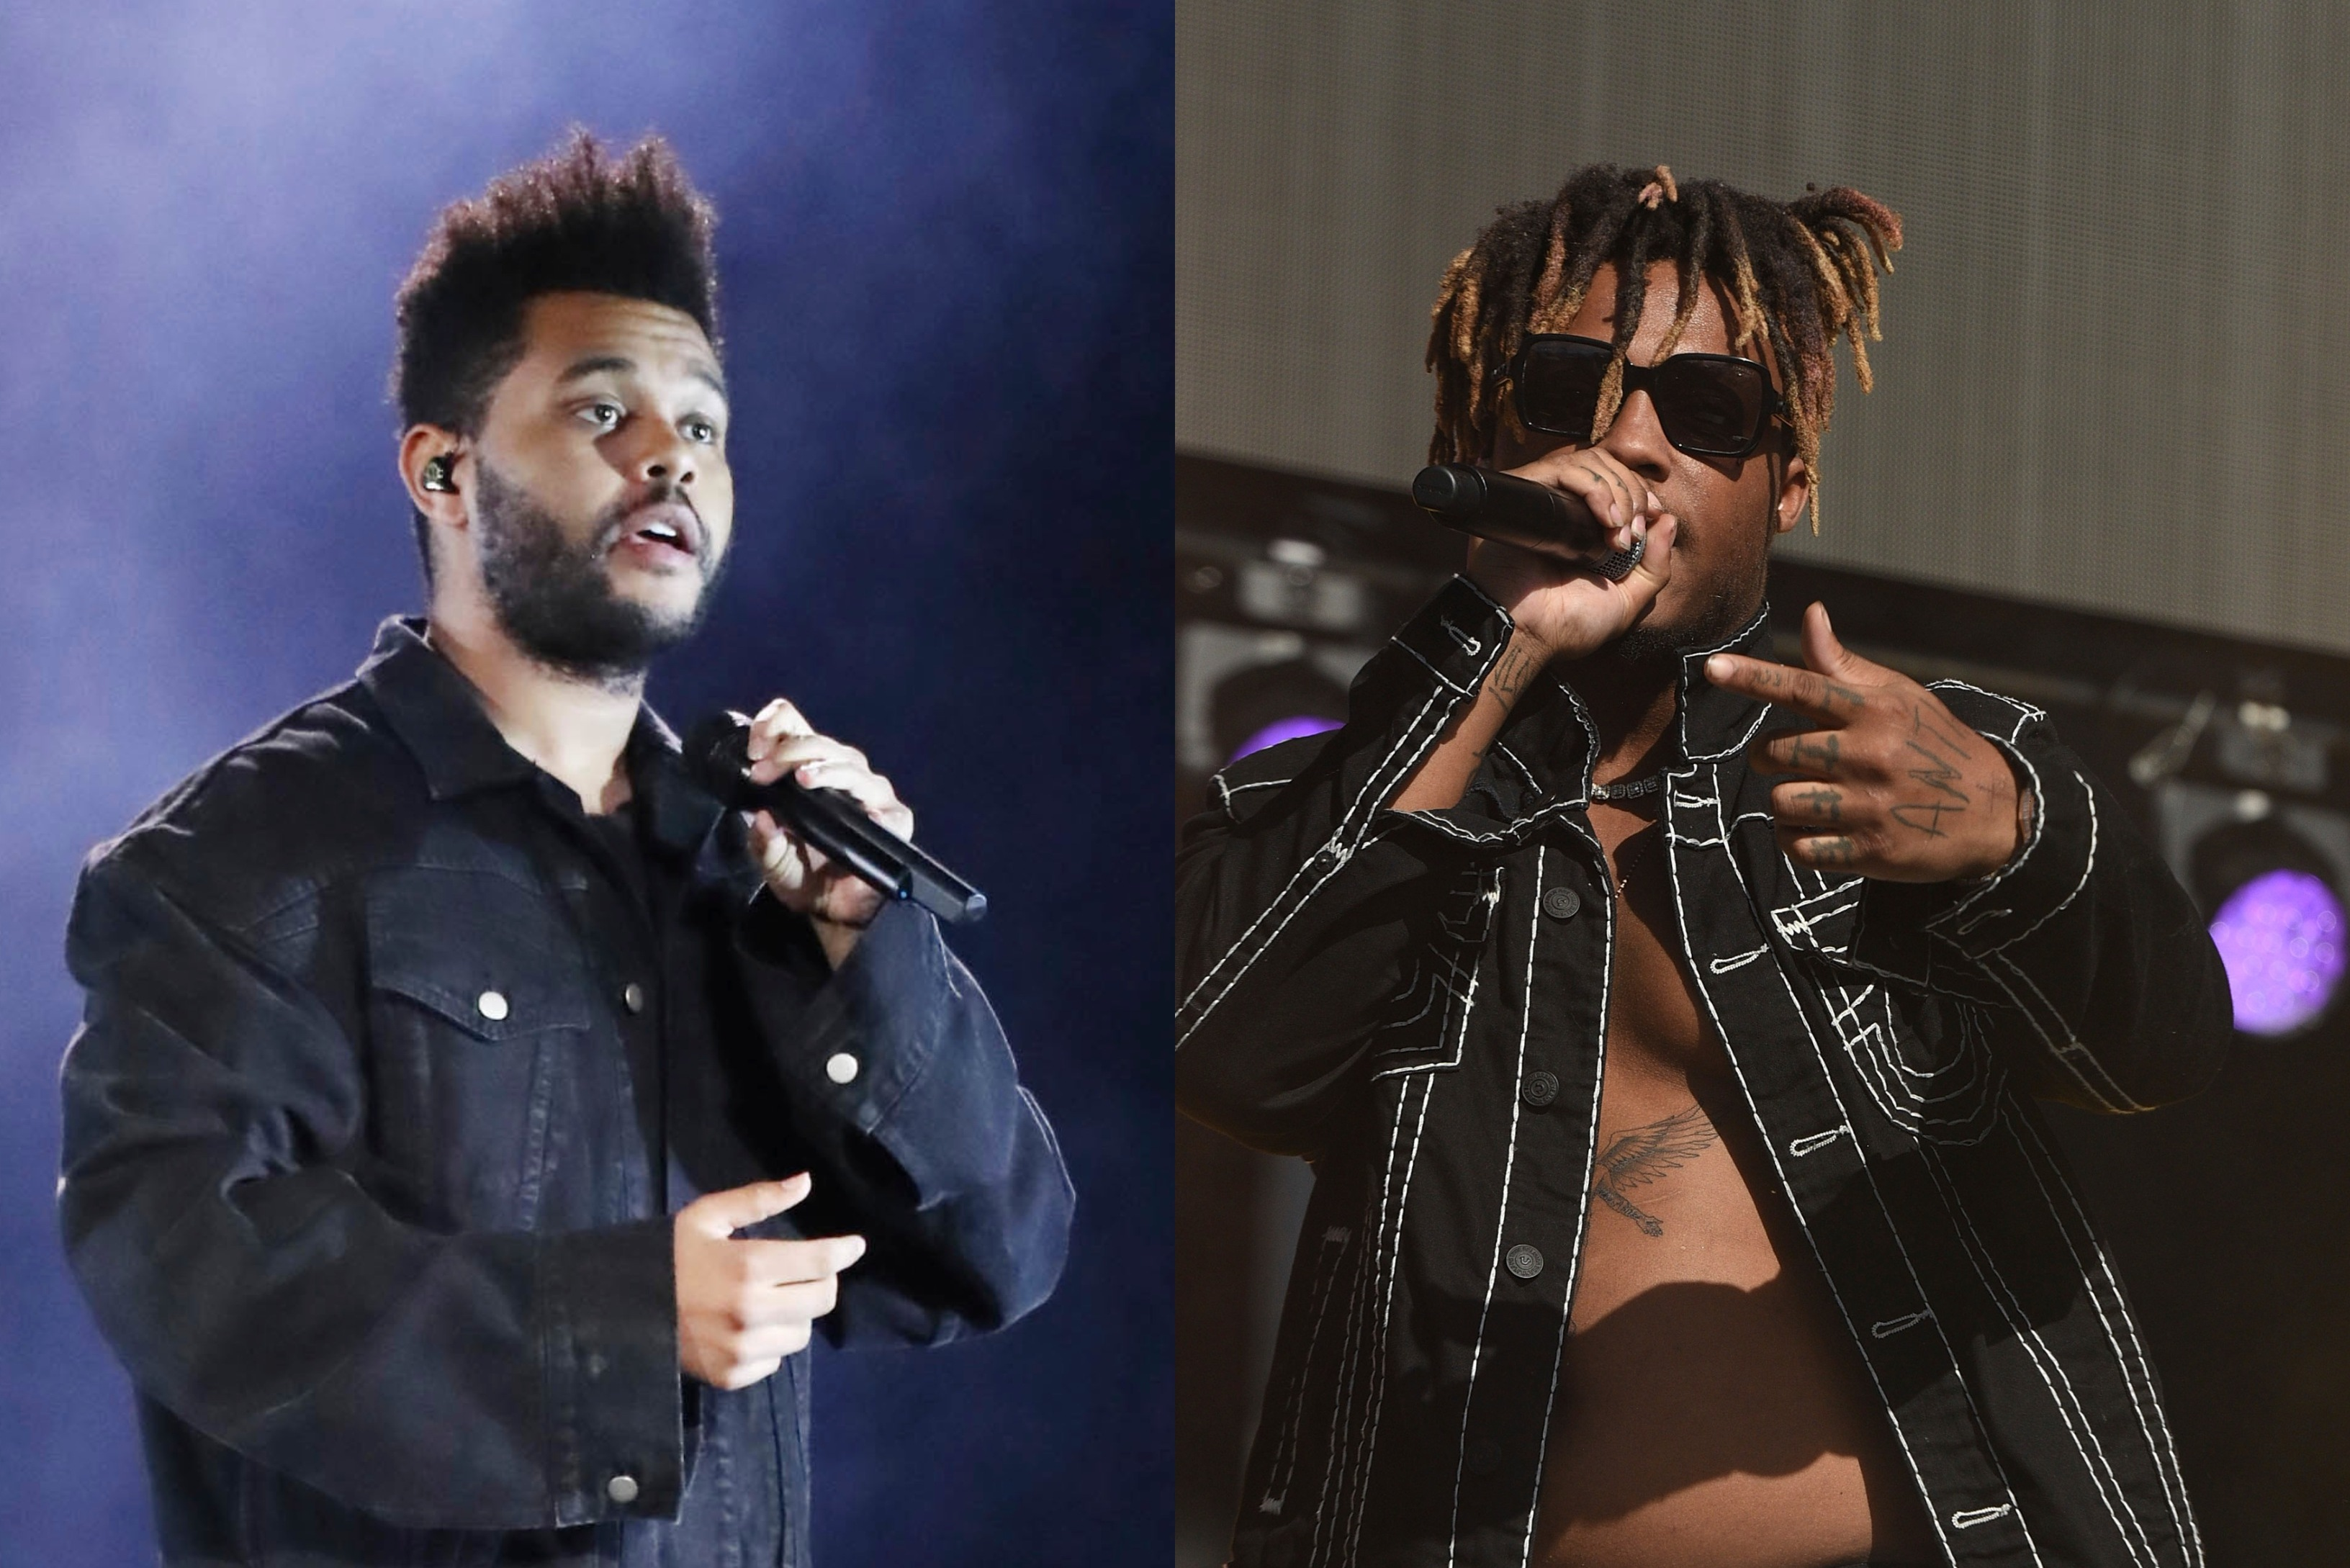 The Weeknd Drops Juice WRLD Collaboration 'Smile' - Rolling Stone